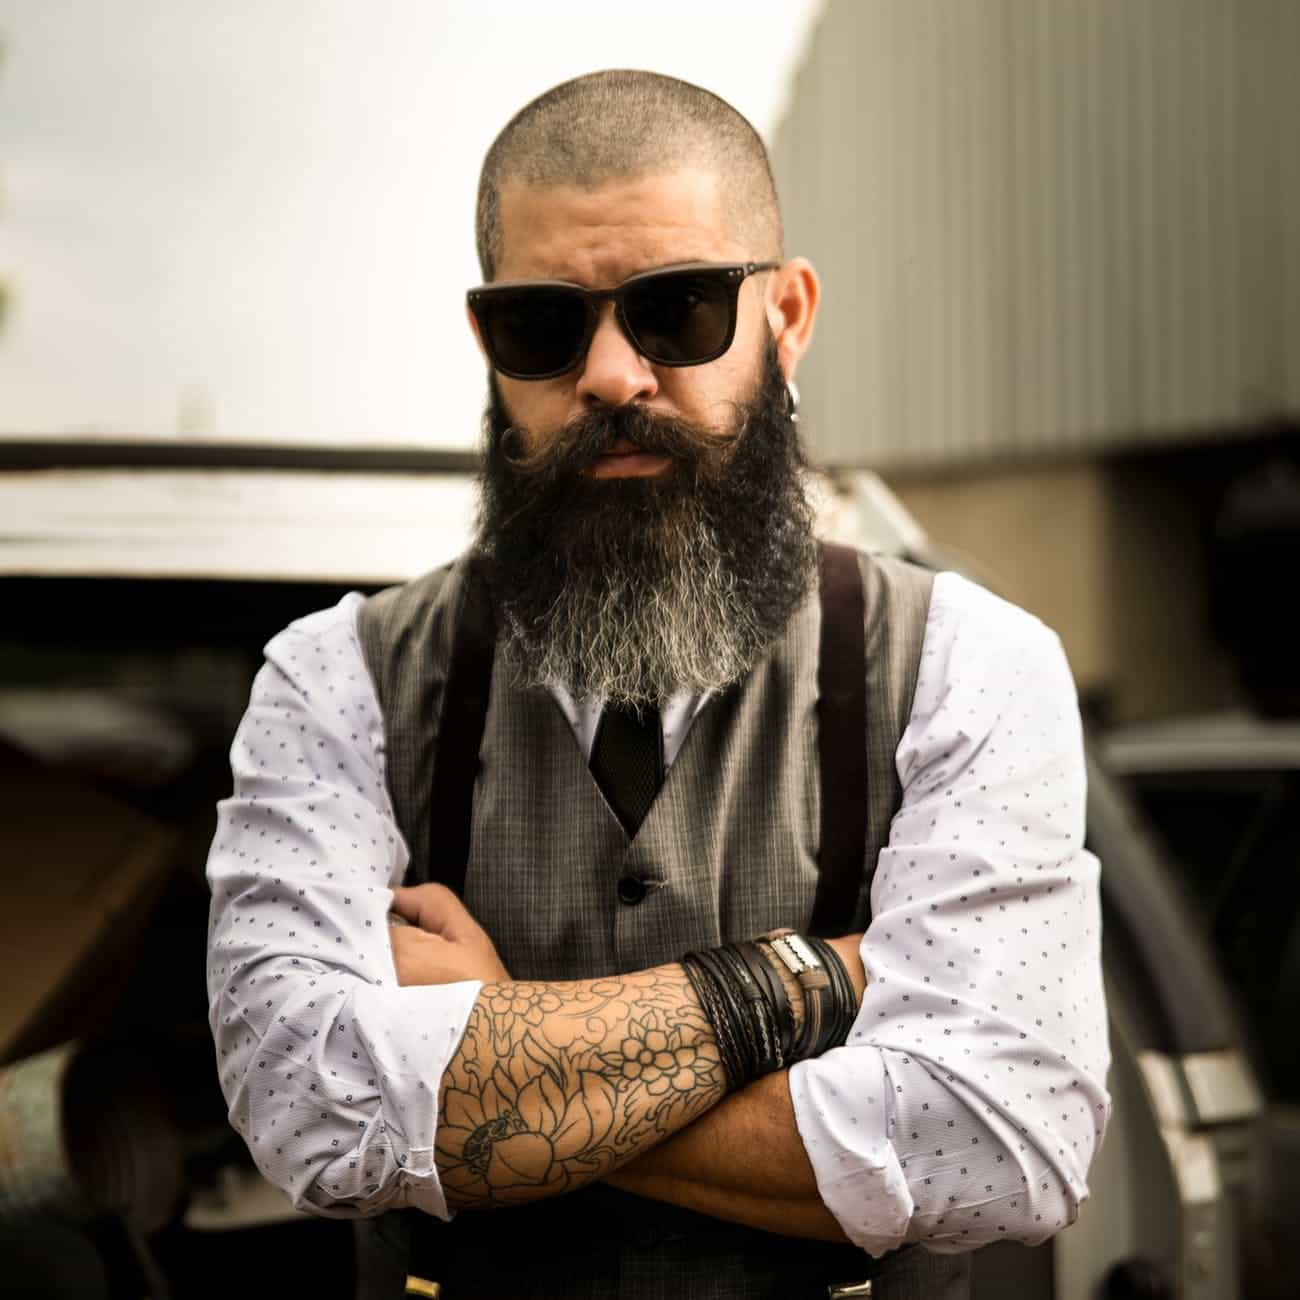 Top 3 Products That Are Not Related To The History Of Beards